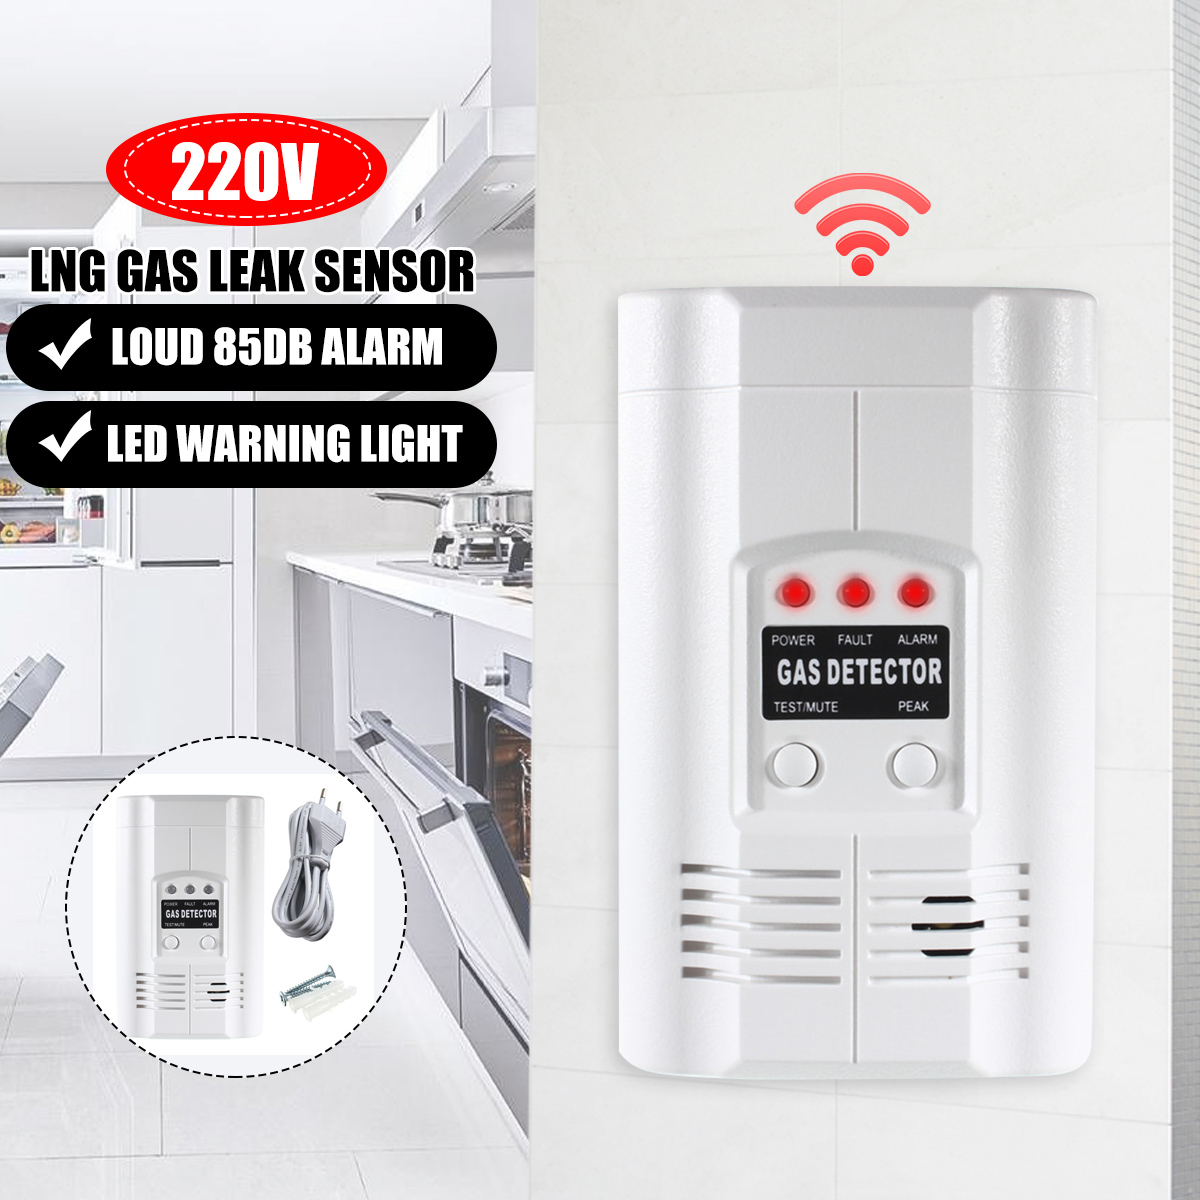 Sensitivity Gas Leak Detector Sensor Alarm Digital Combustible Gas Detector Natural Propane Lpg LNG Gas Leak Home Warn Tester